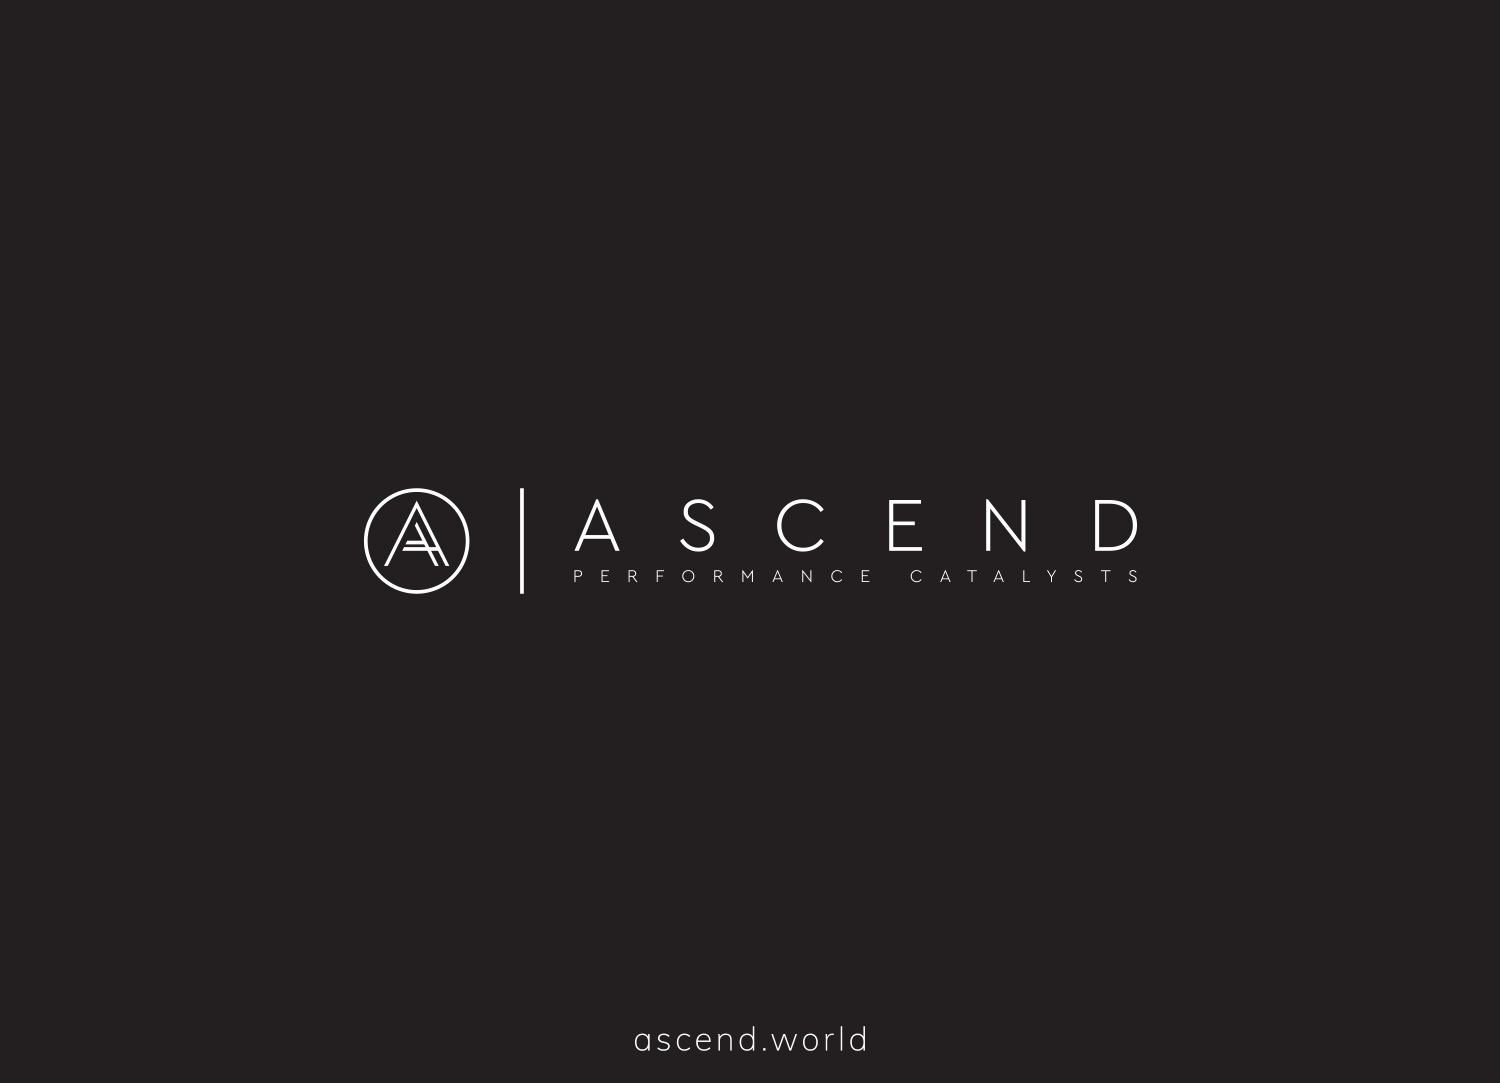 Ascend logo design and brand identity by Ditto Creative, branding agency Kent